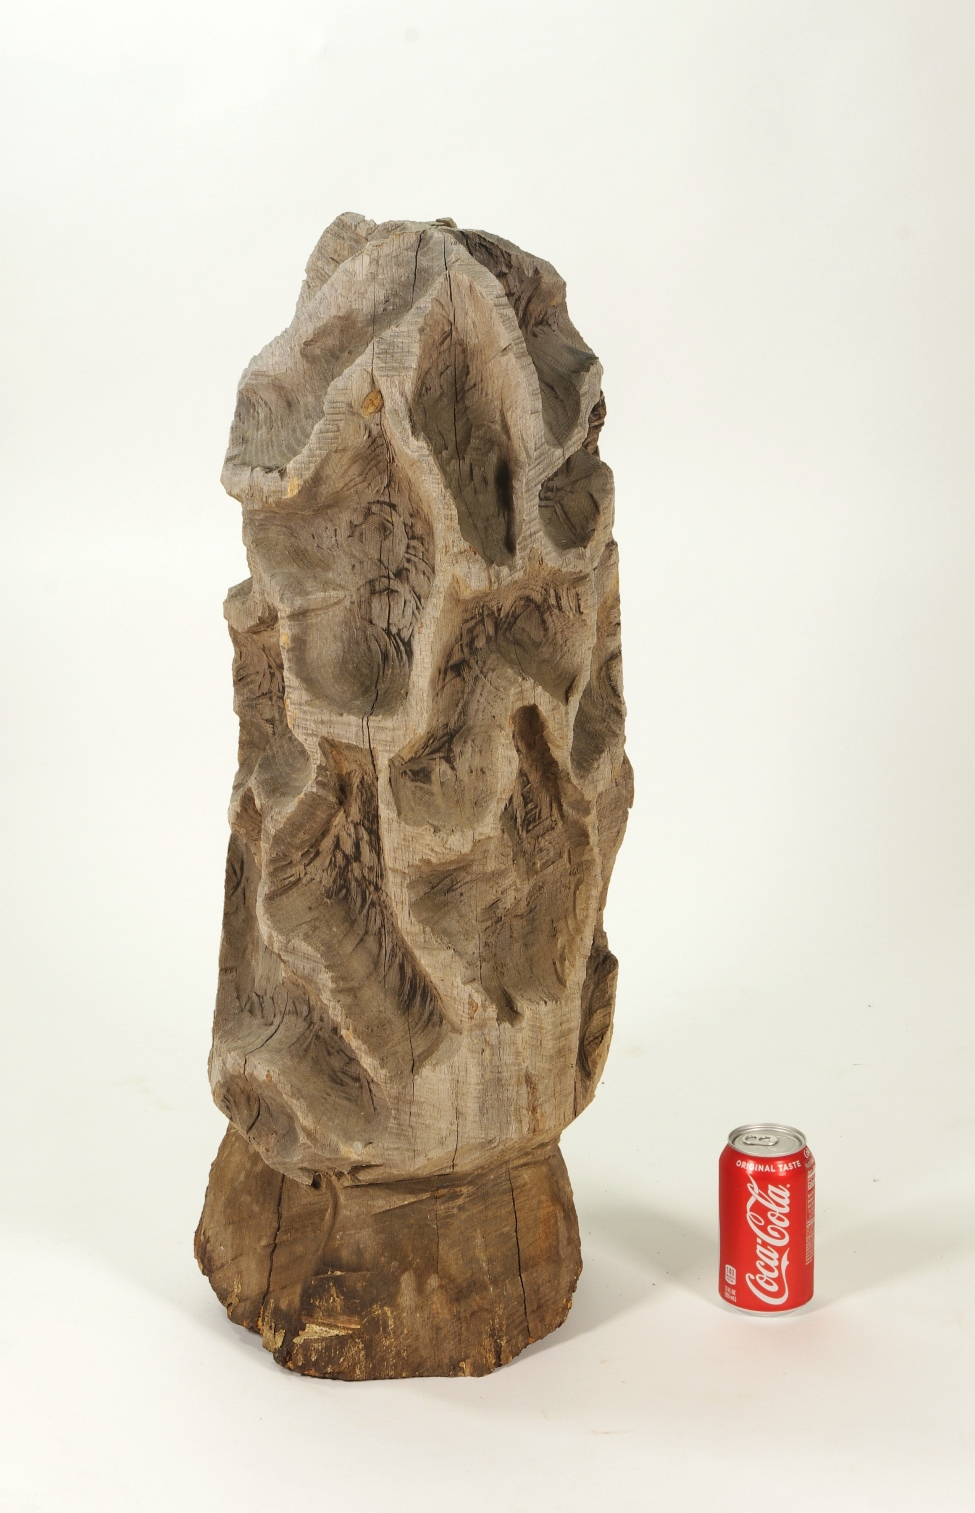 View 7: Folk Art Carved Morel Mushroom Sculpture, Mid 20th c.